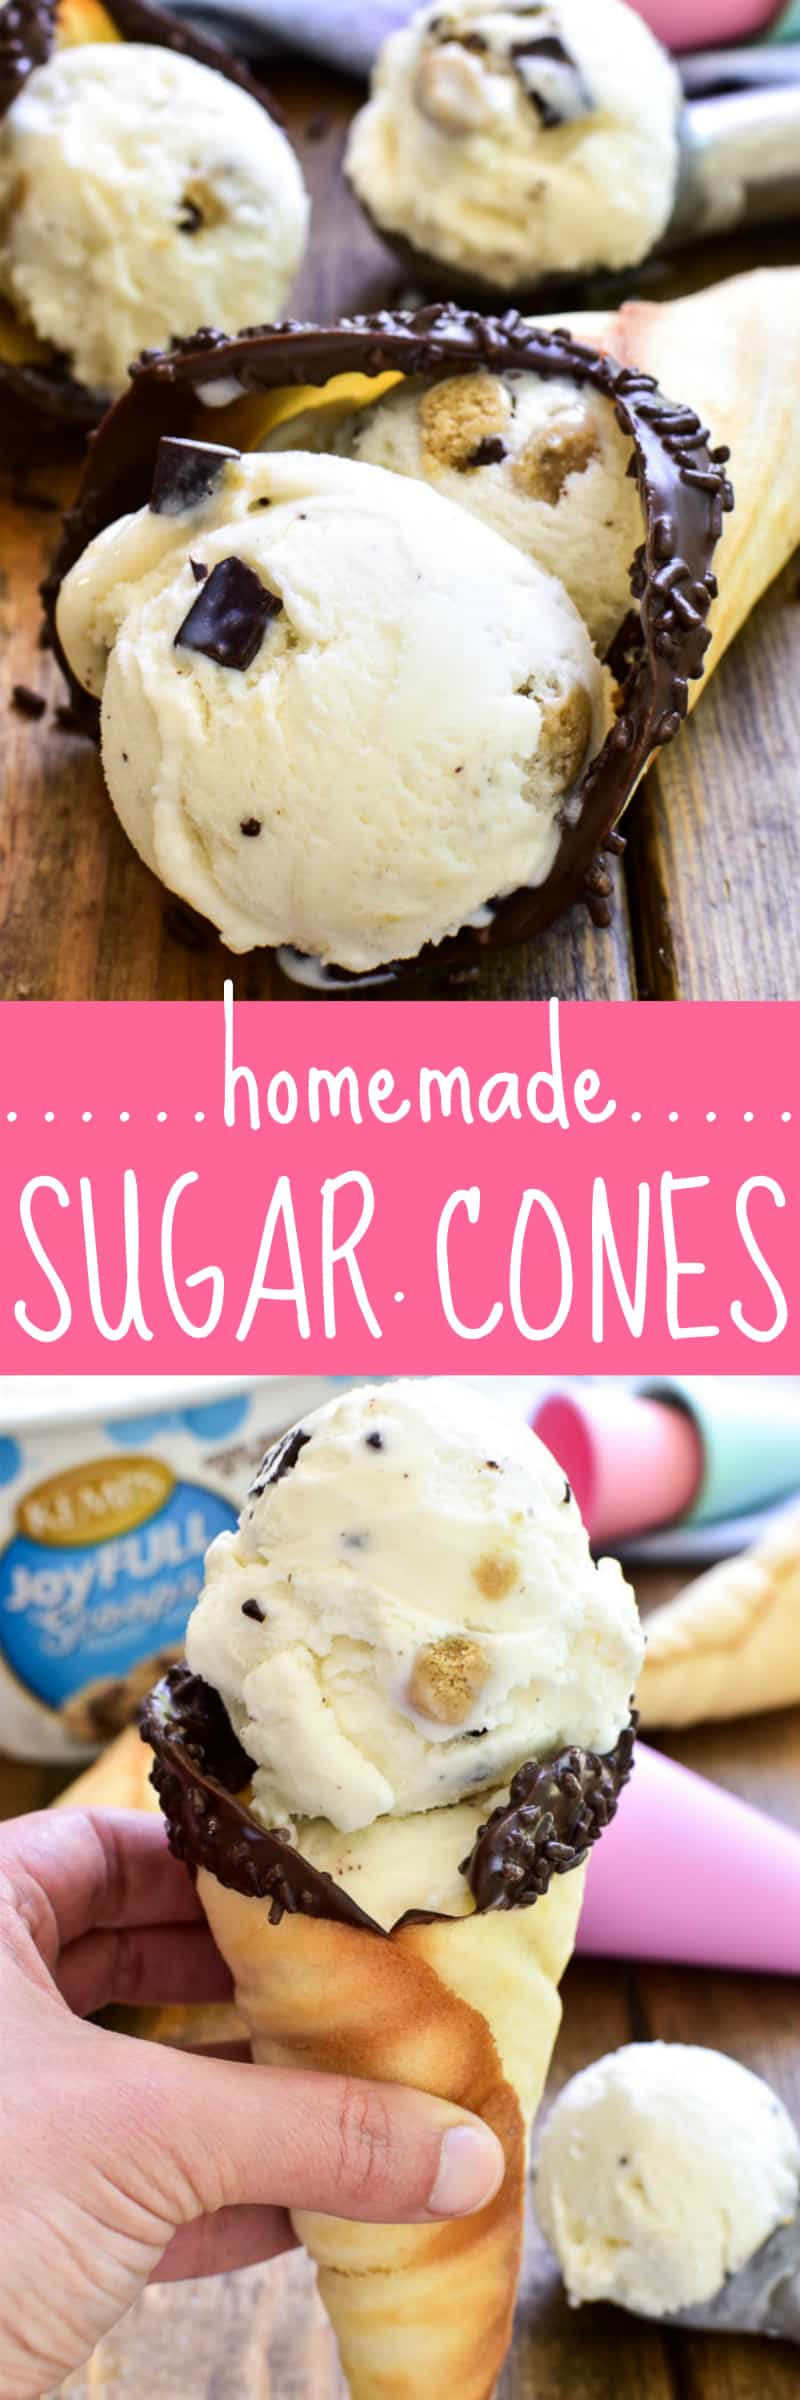 Take your favorite summer treat to the next level with Homemade Sugar Cones! These cones are easy to make, with just a handful of ingredients, and they taste amazing. Best of all, there's no waffle cone maker required. Which means anyone can make them! These homemade ice cream cones can be made in the oven or on the stovetop, and they can easily be made in different sizes and decorated for different occasions. They're the perfect EASY way to make your favorite frozen treats even better!